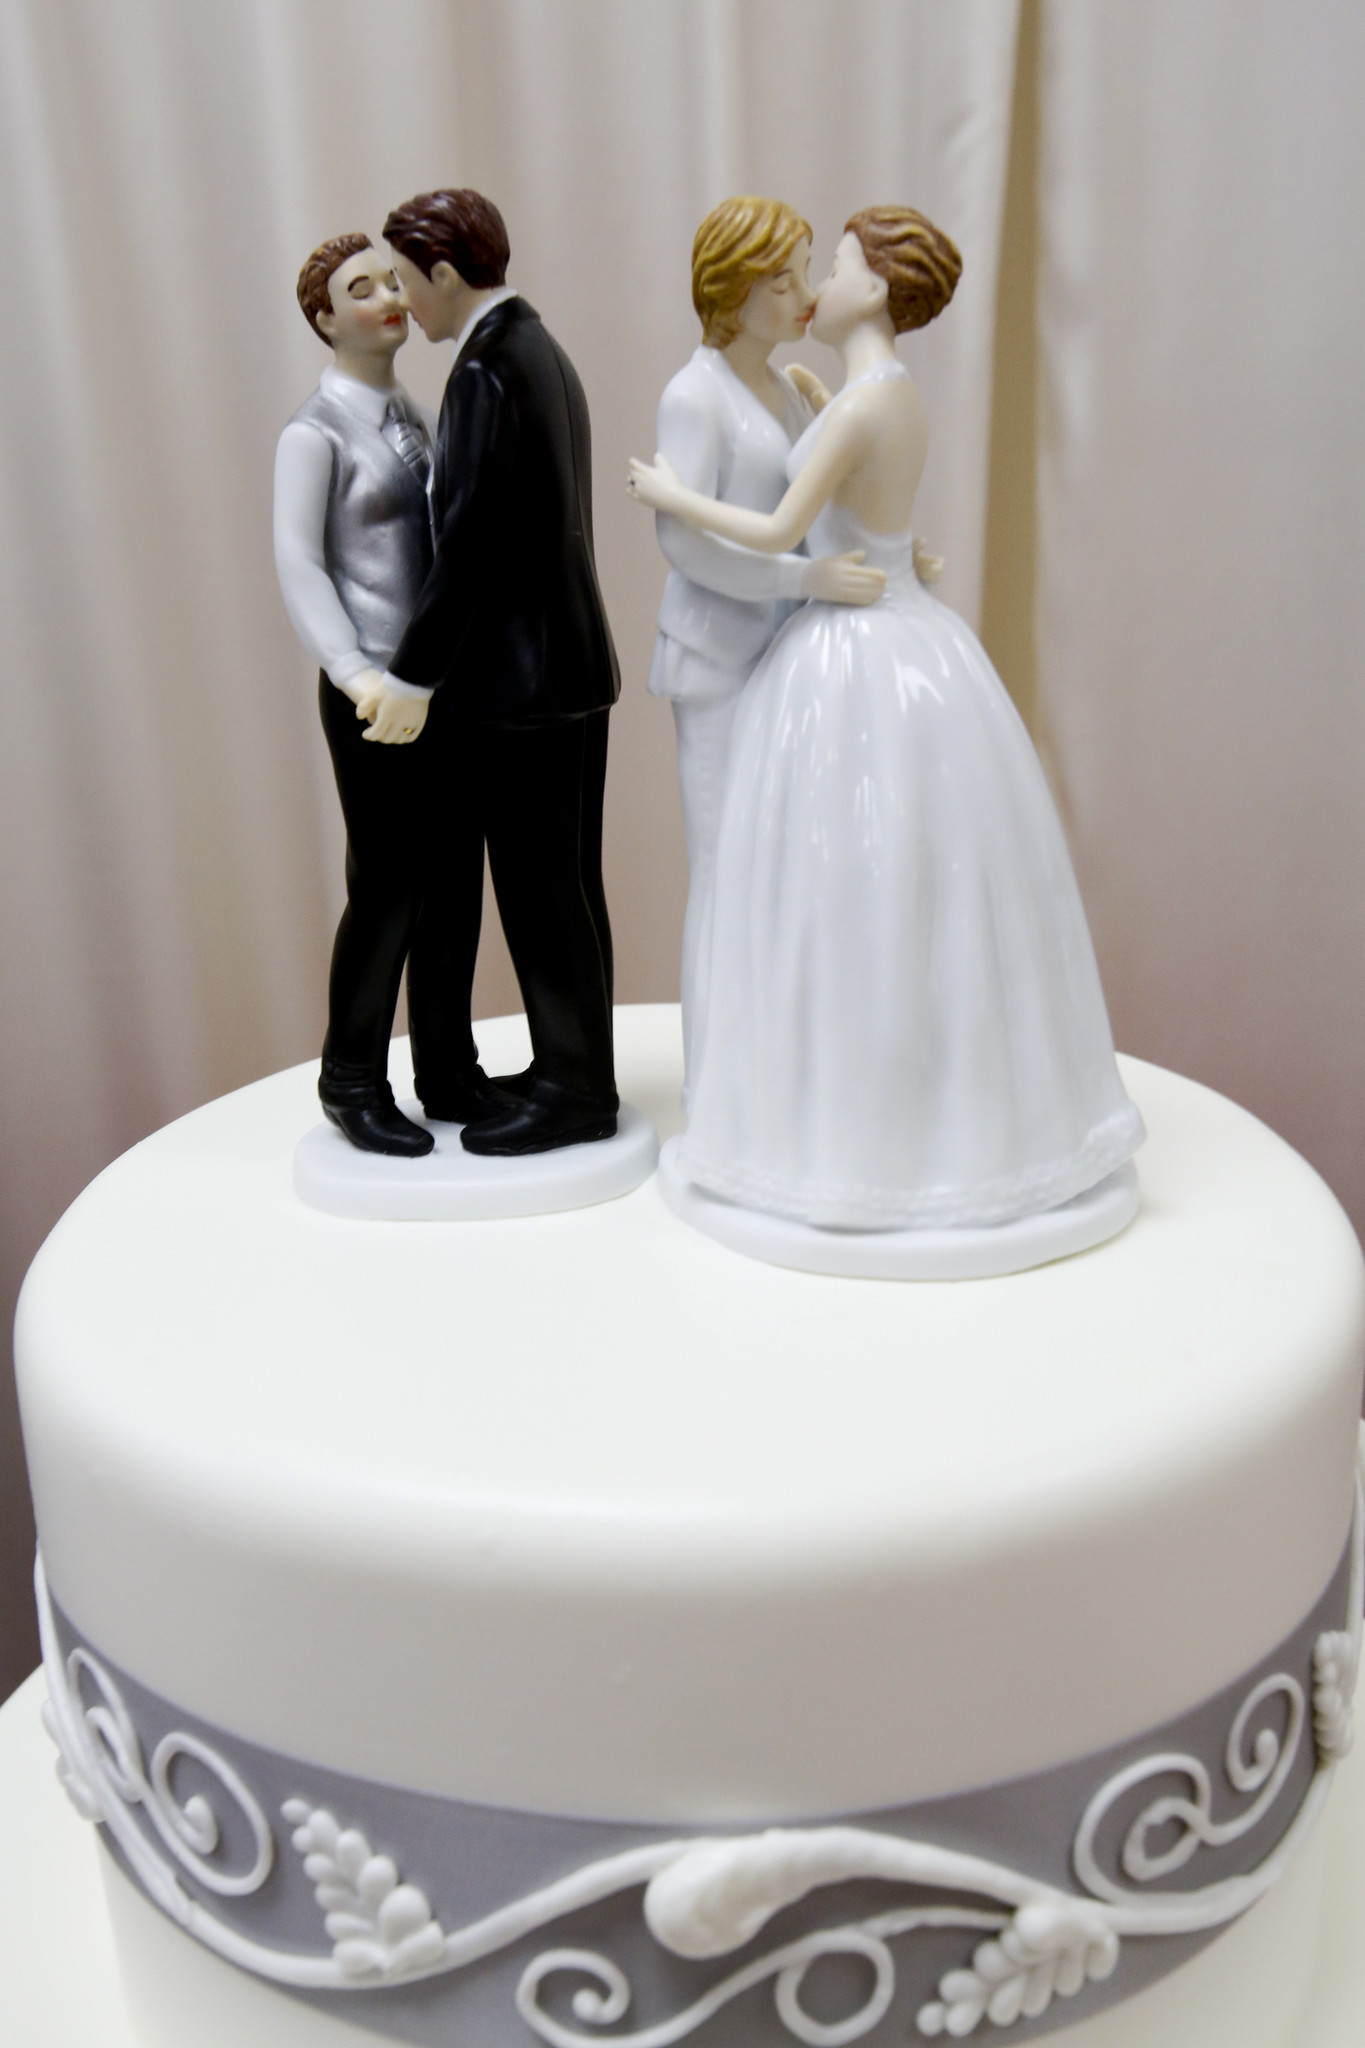 Wedding Cake Ideas For Gay Wedding : Former Oregon bakery owners must pay USD135,000 for denying ...